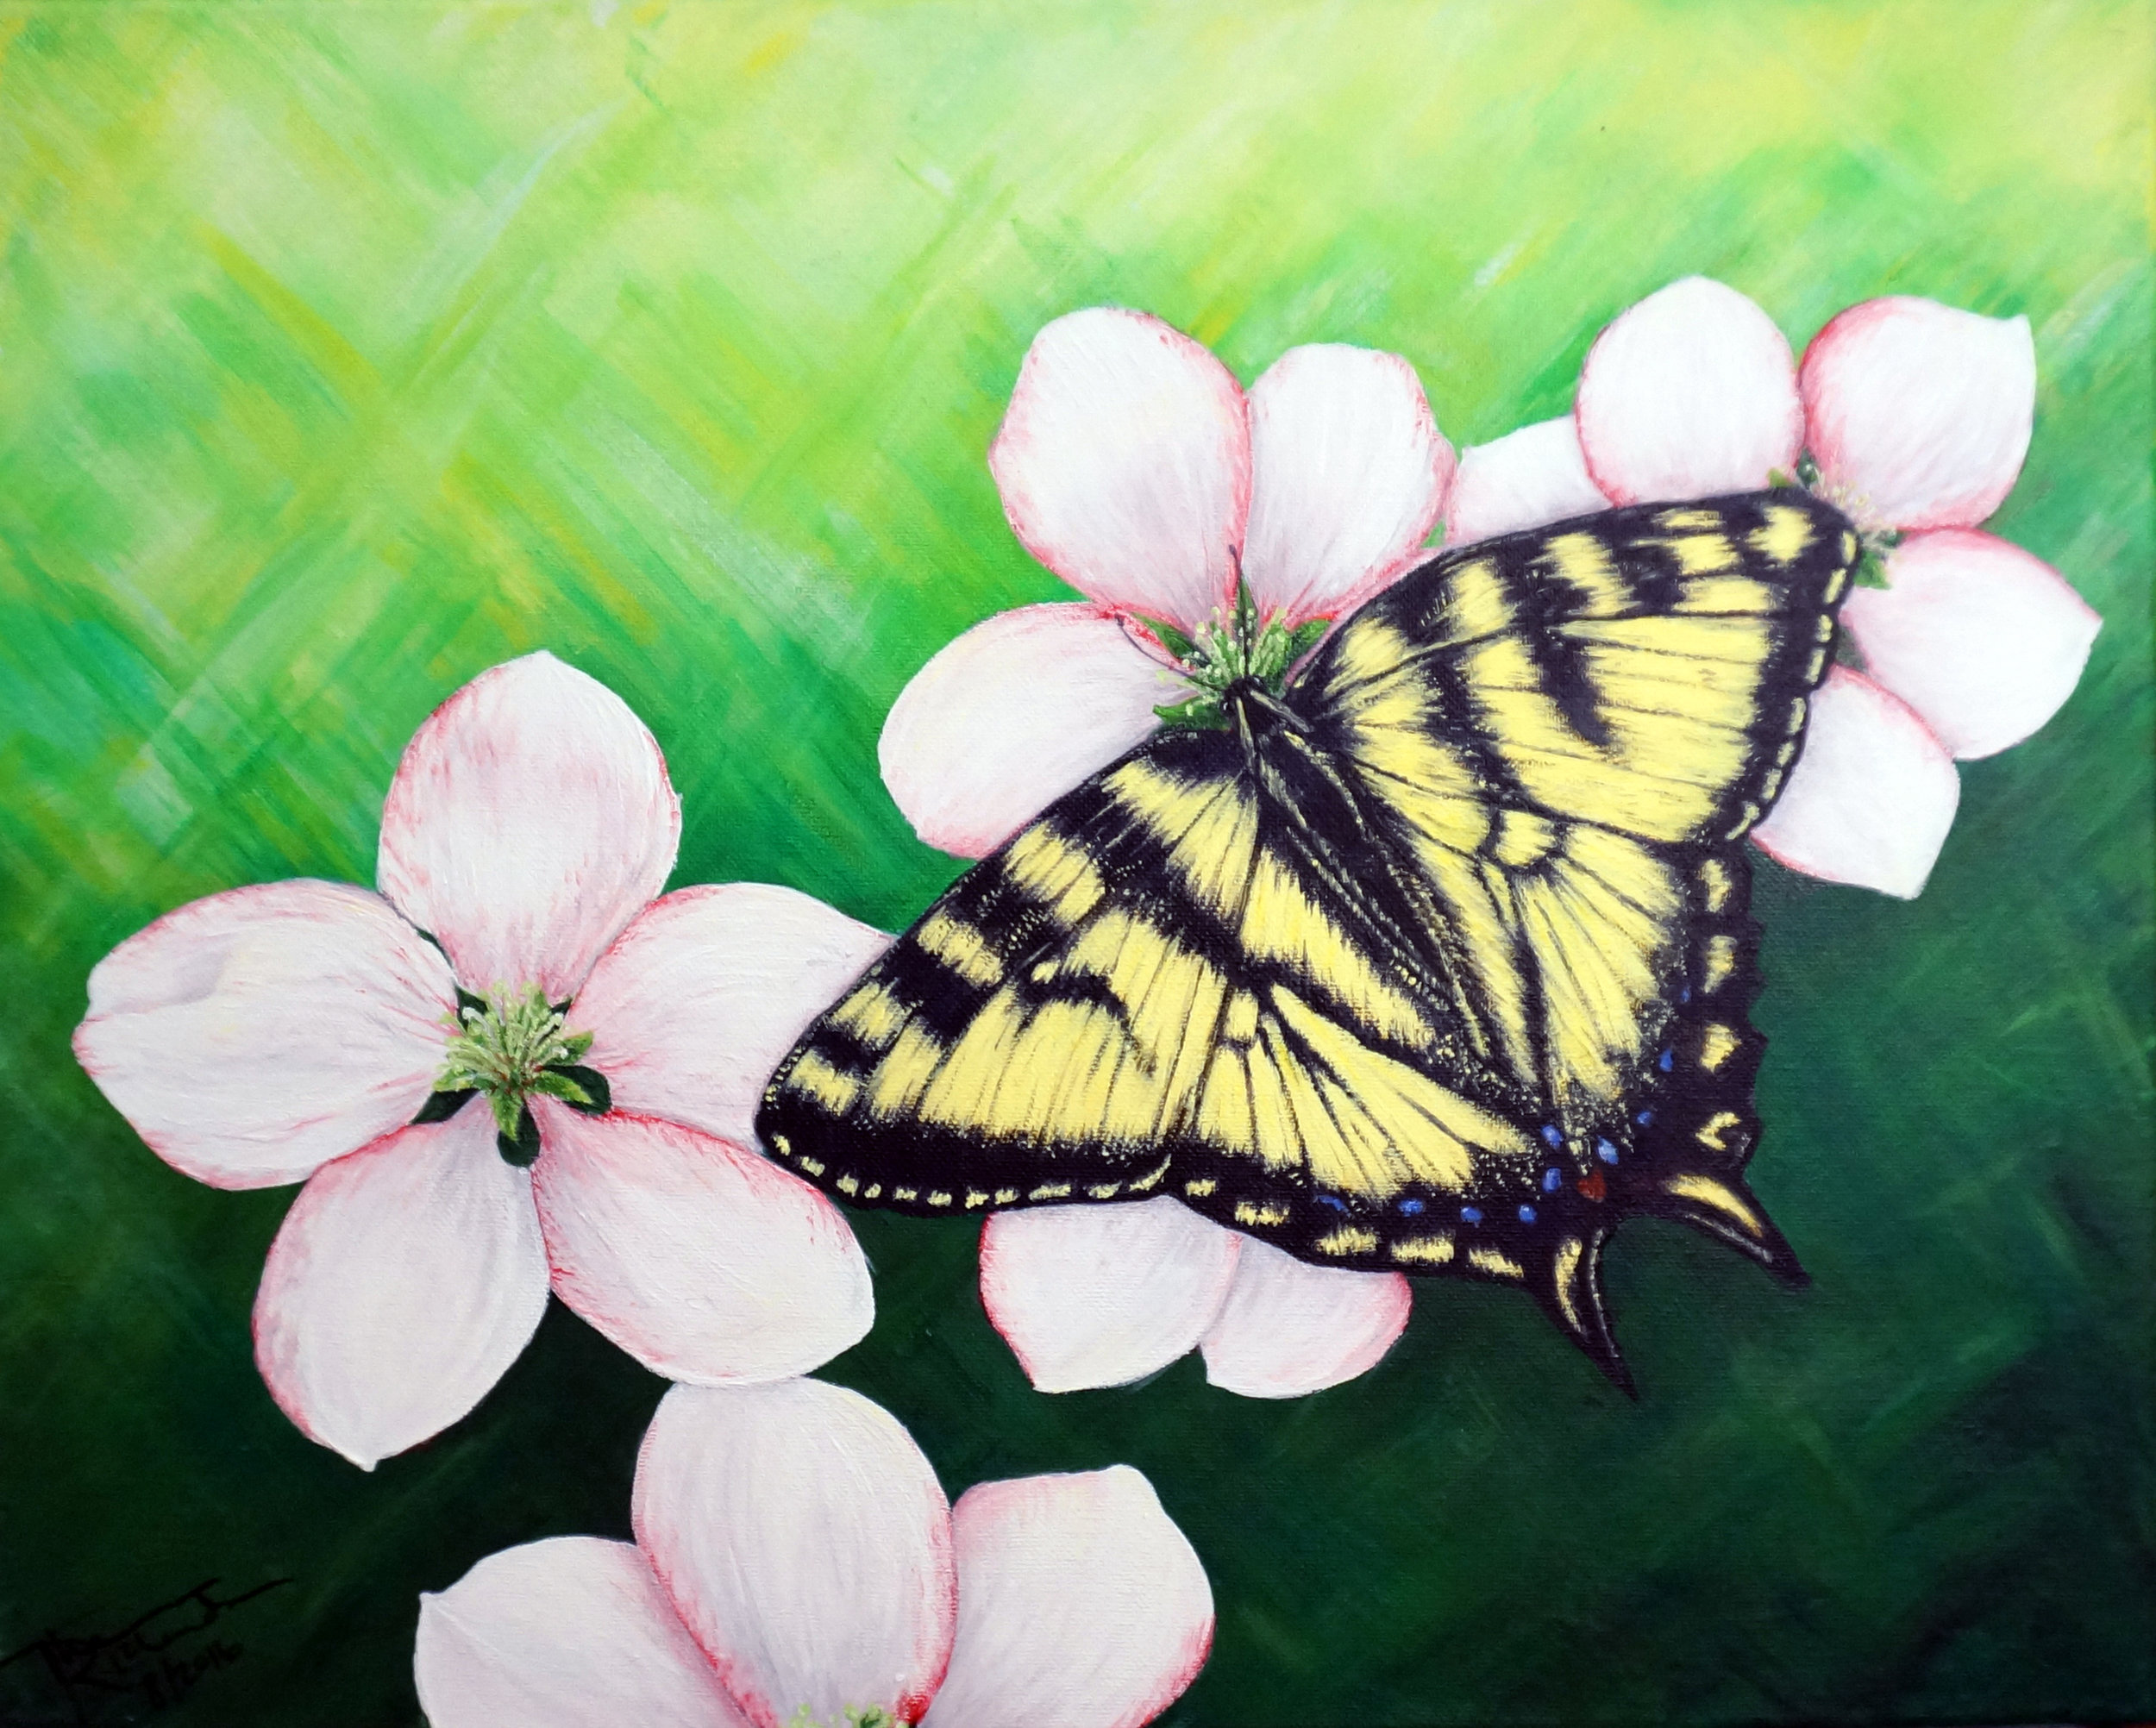 Butterfly and Blossoms , 2016, acrylic on canvas, 16 x 20 inches